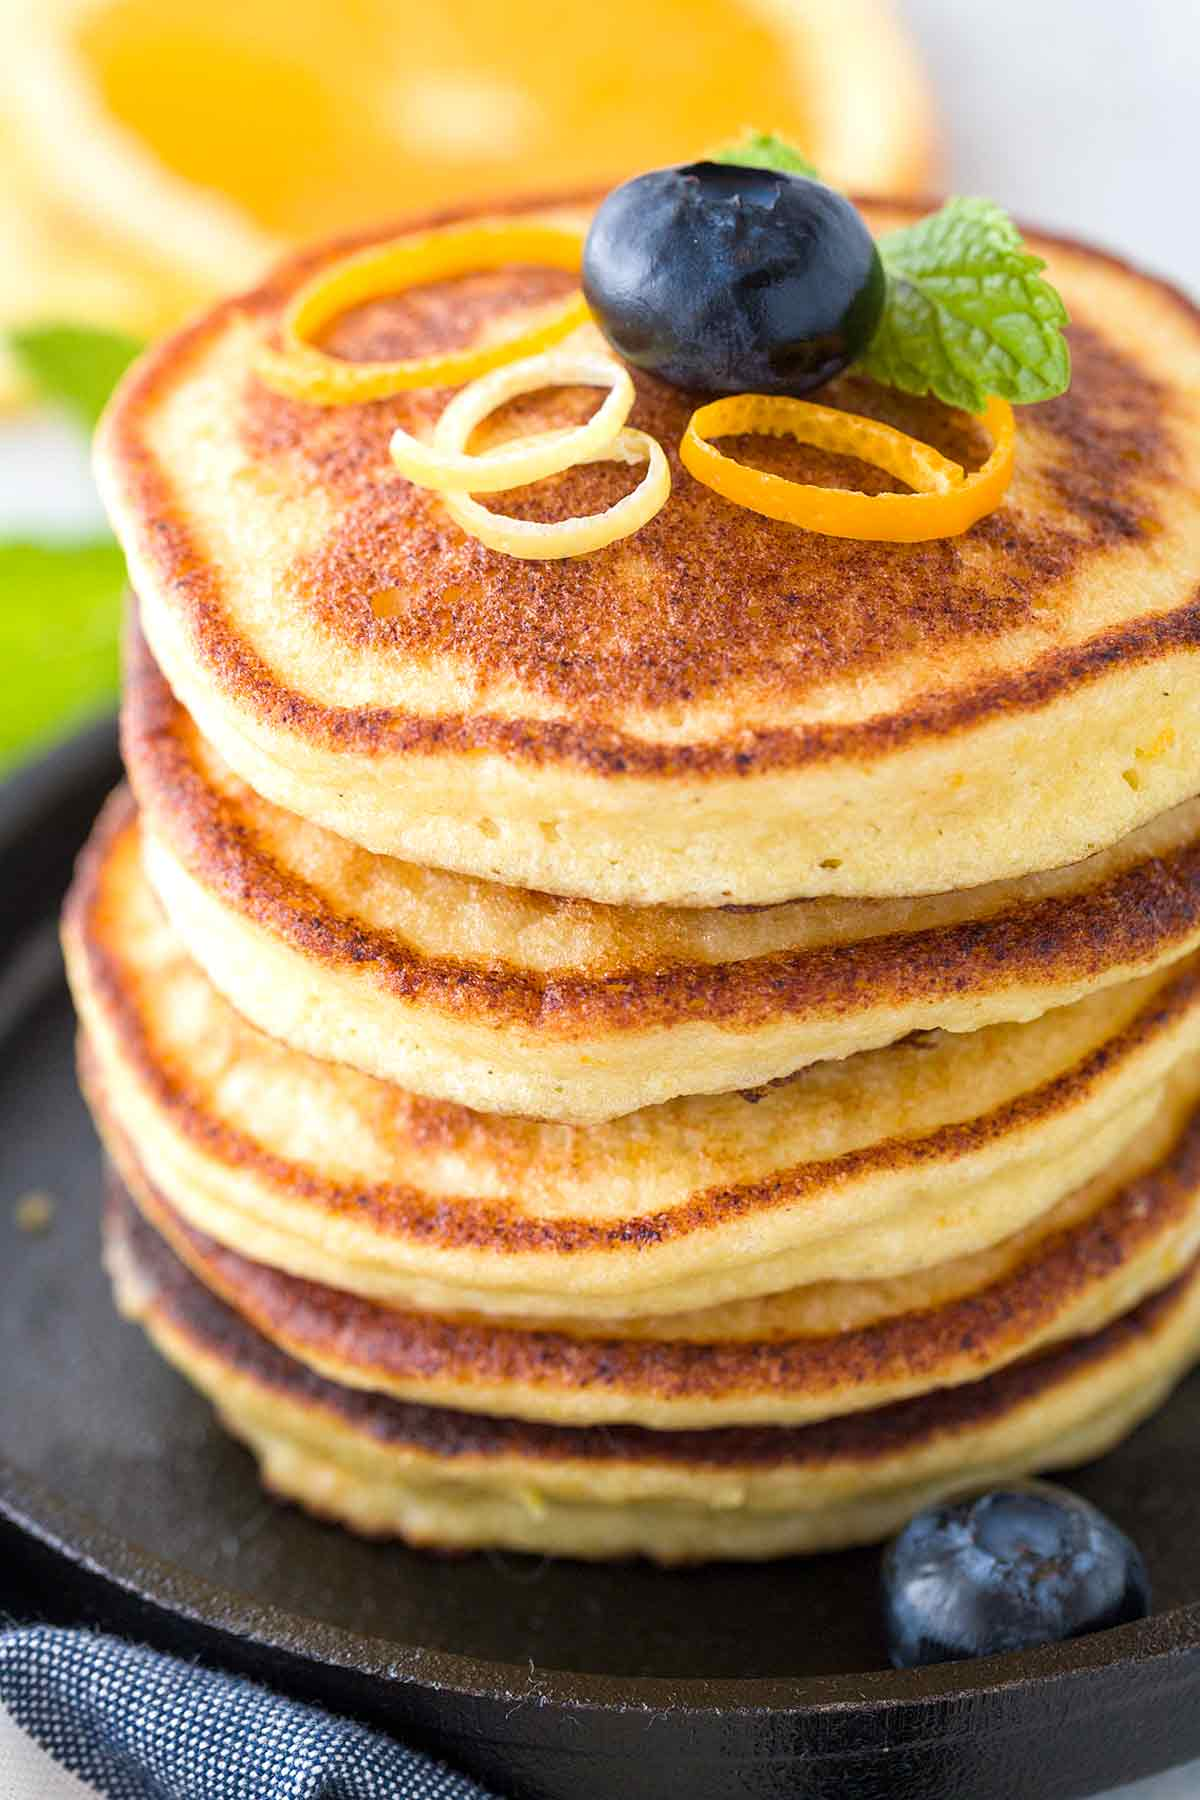 Big stack of thick ricotta pancakes with blueberries